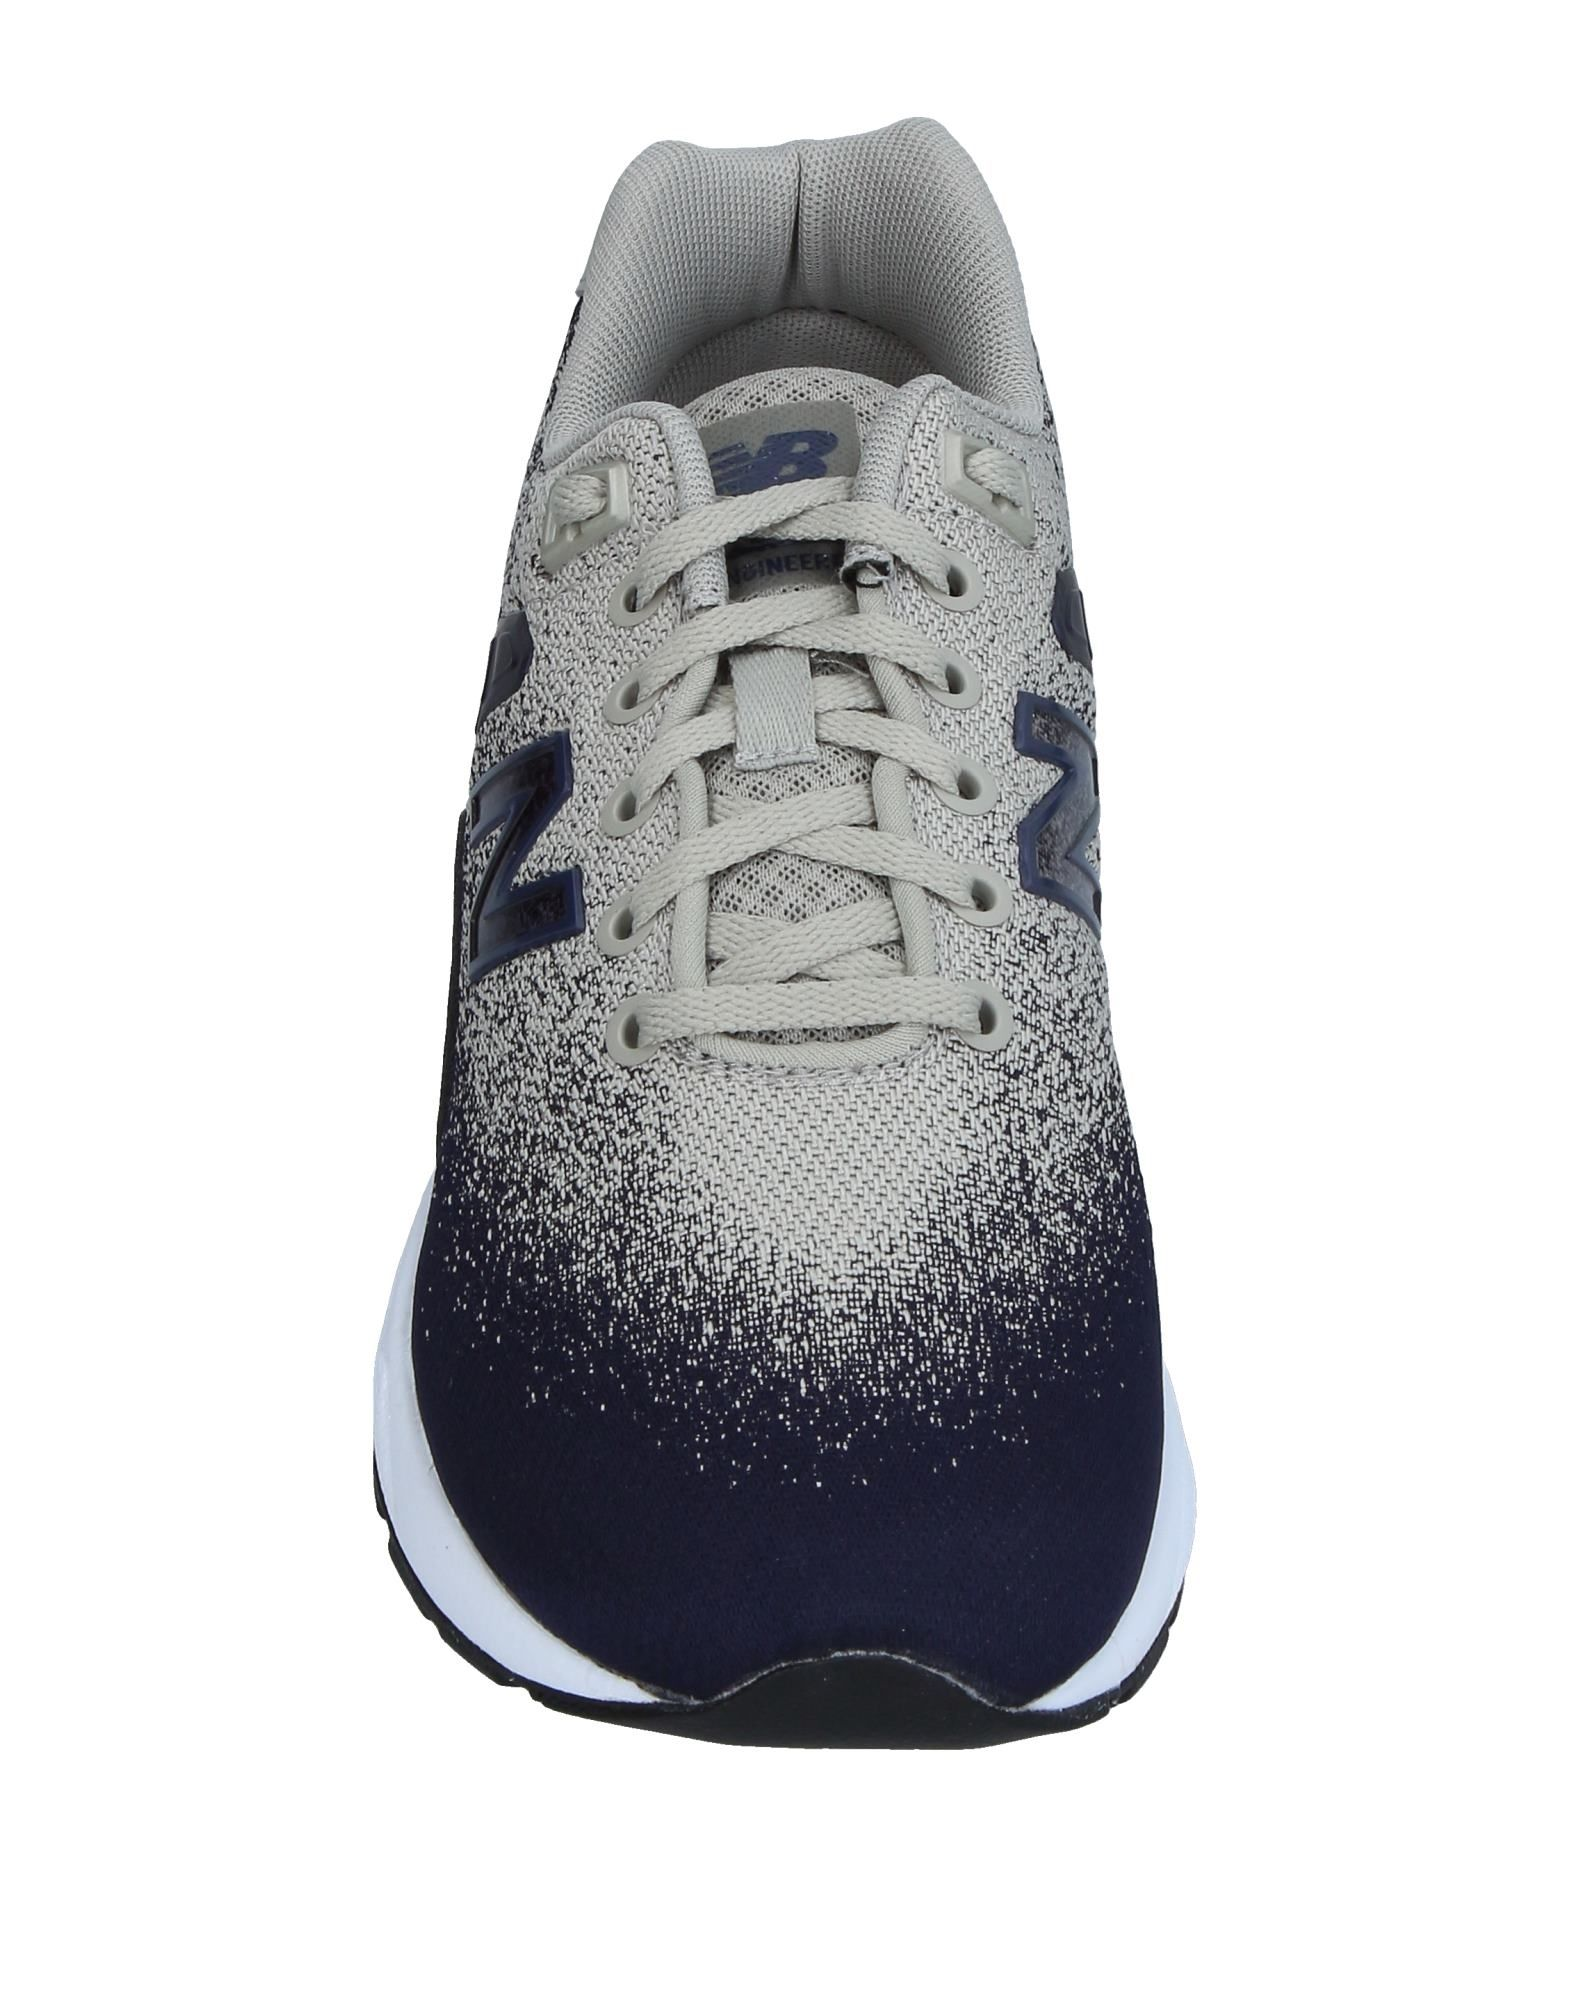 New 11287427BN Balance Sneakers Herren  11287427BN New 32aaec